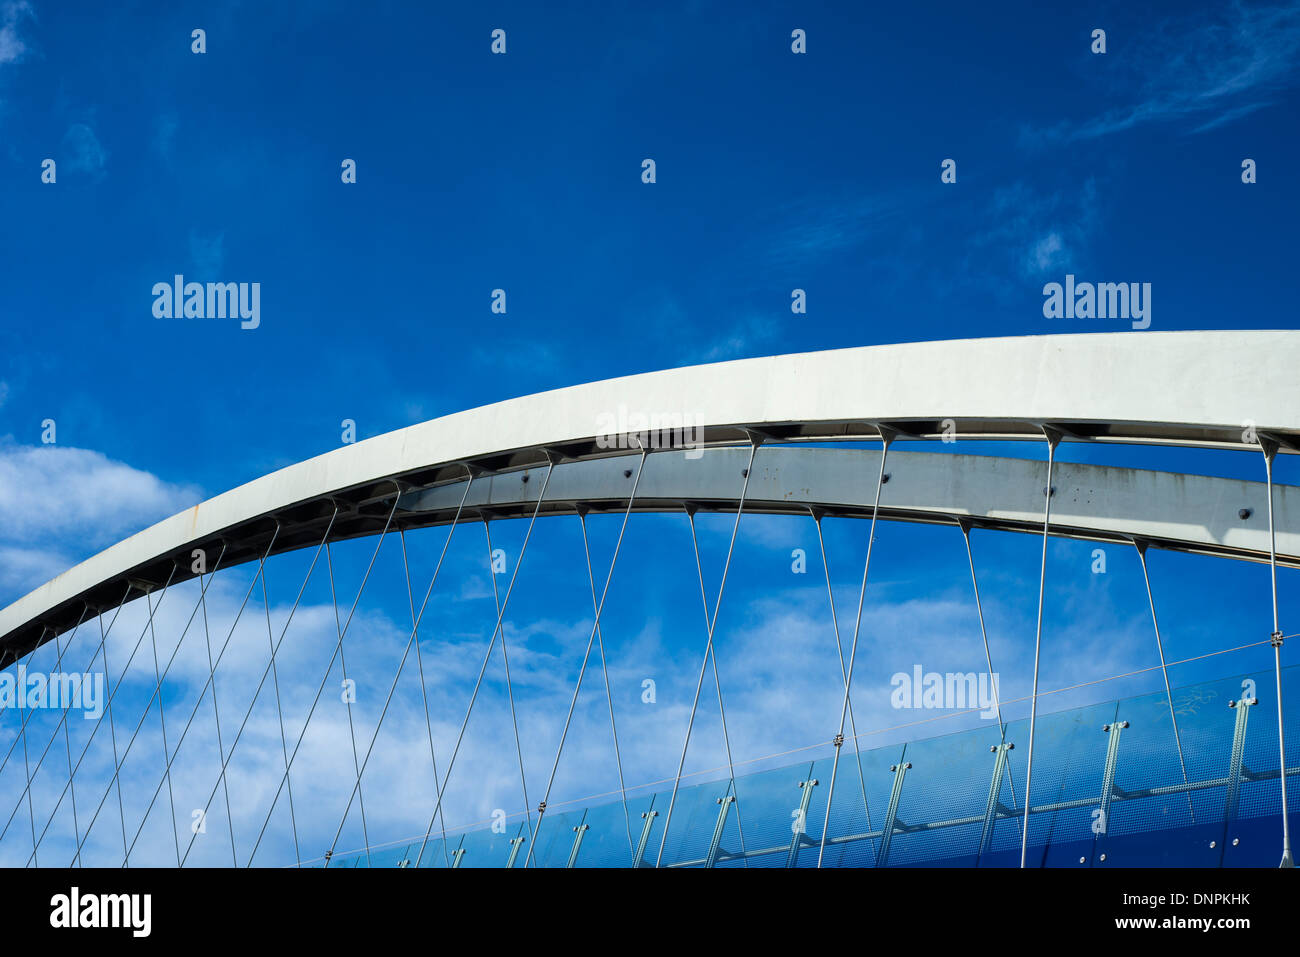 Detail of the lift bridge, or Millennium footbridge, at Salford Quays, Greater Manchester, England, UK - Stock Image